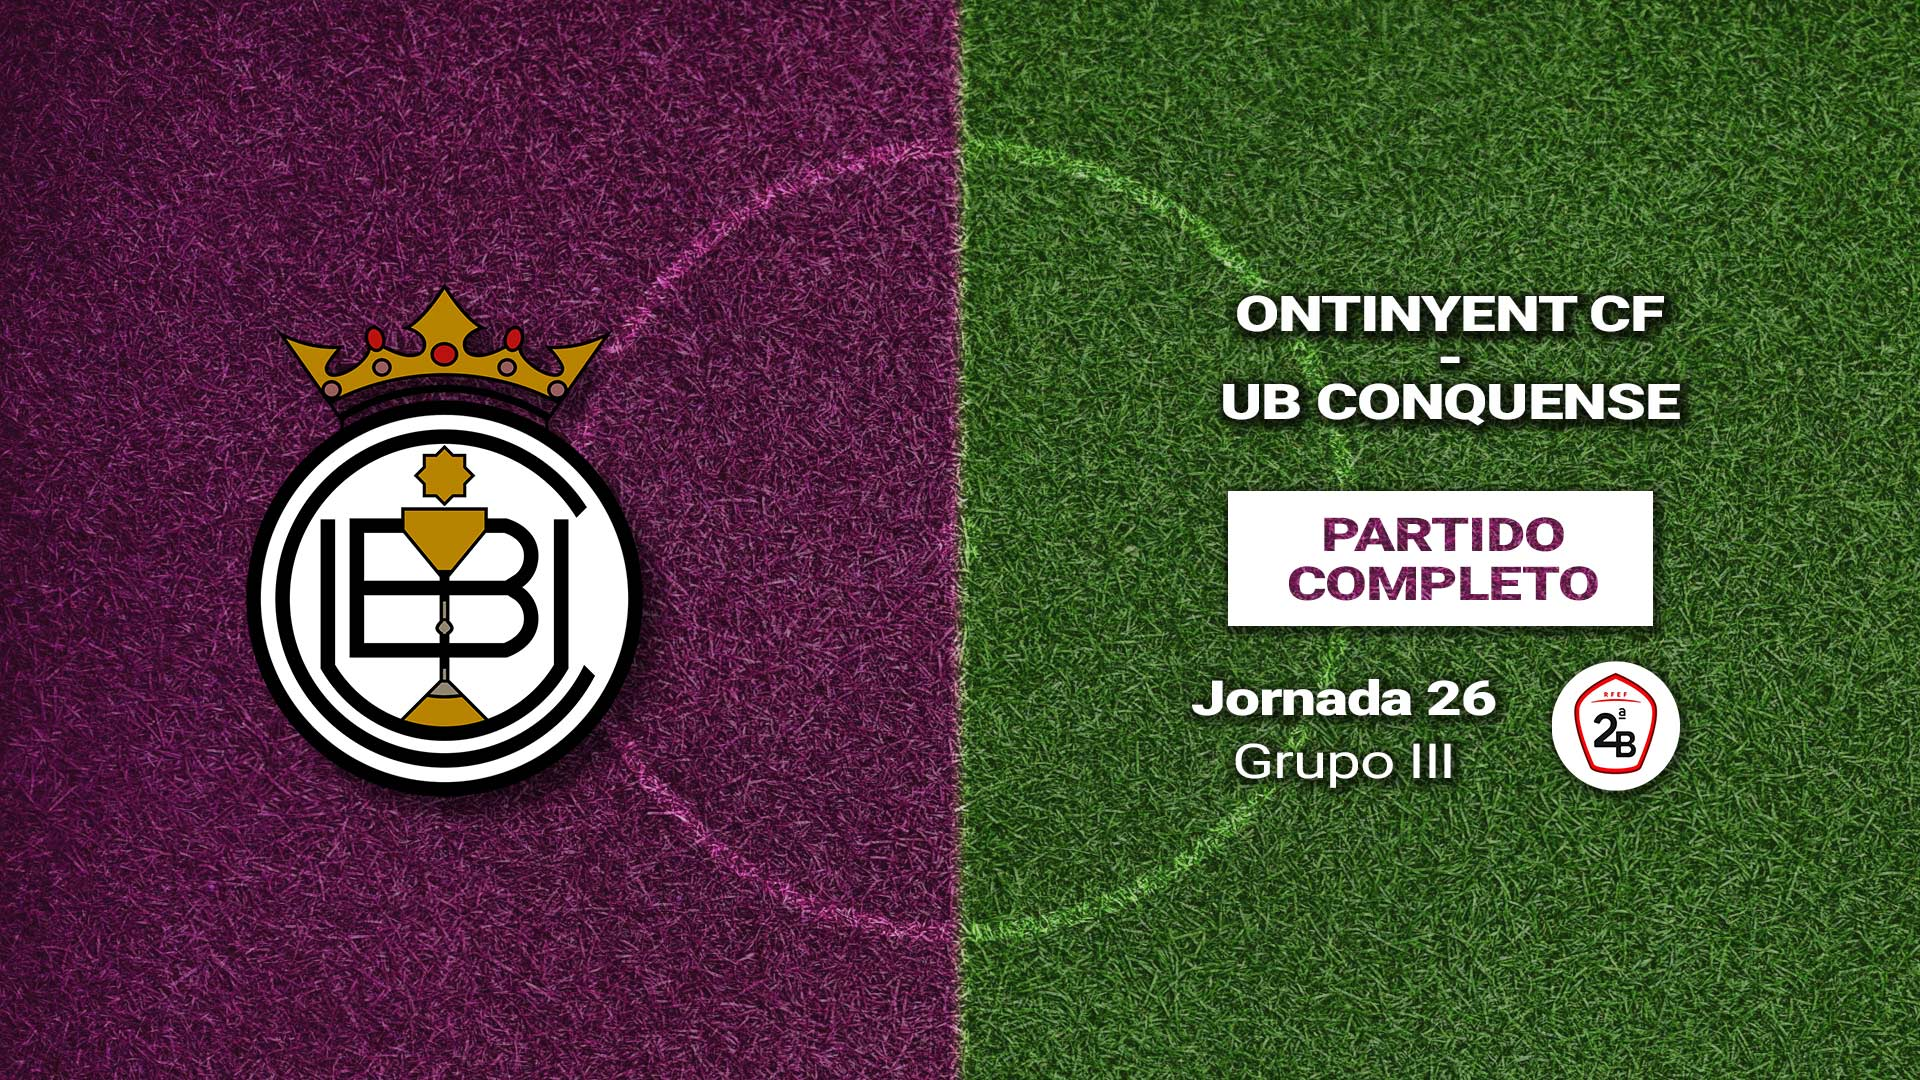 Completo_Ontinyent_Conquense